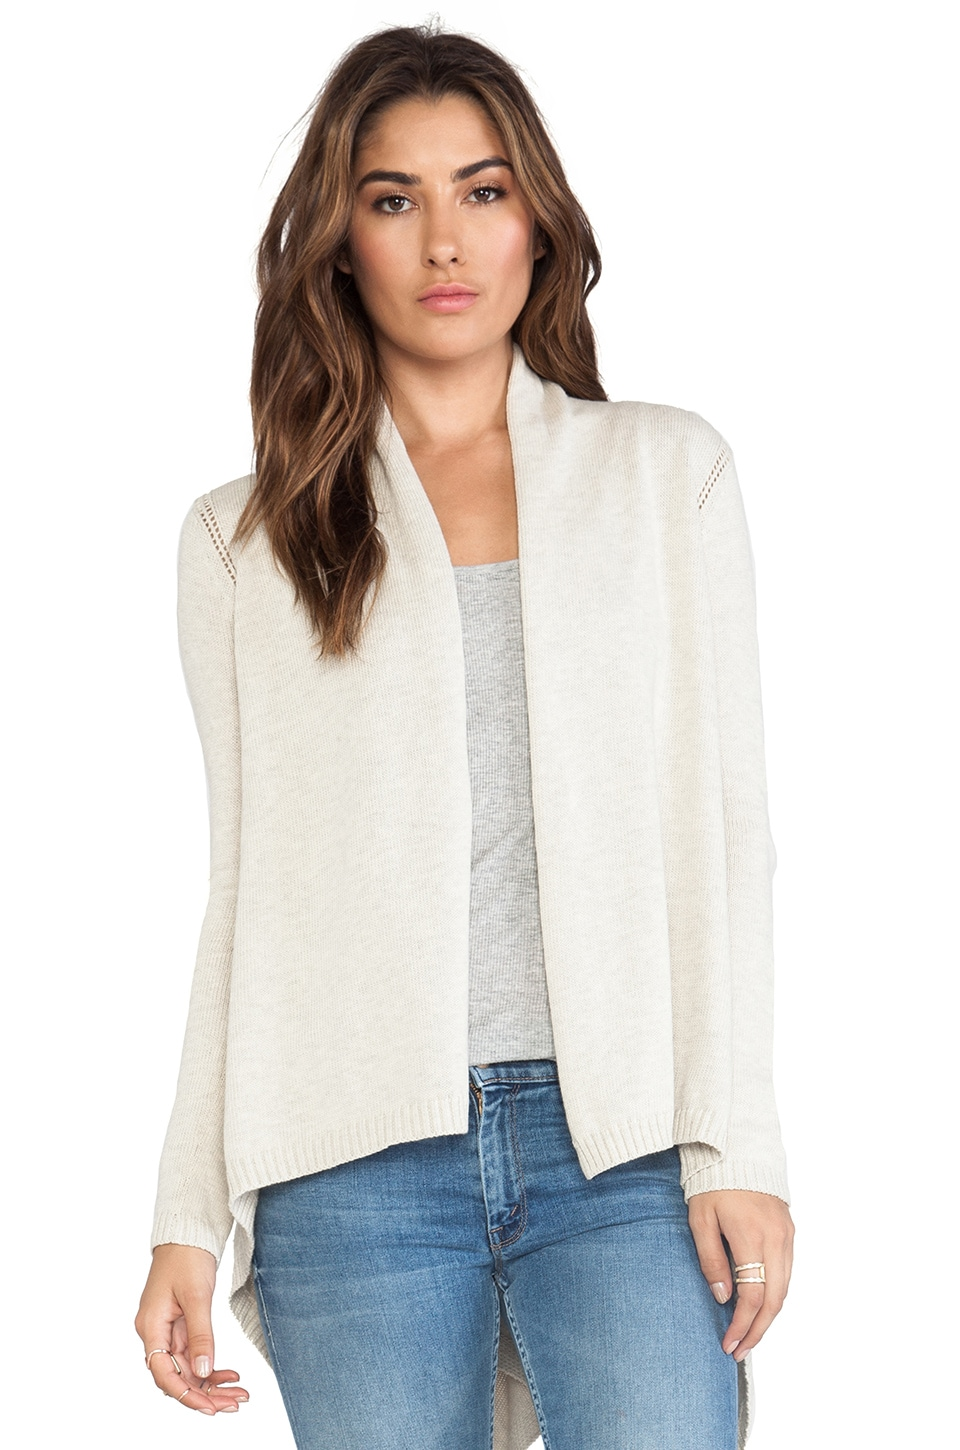 Autumn Cashmere Open Drape Cardigan in Hemp